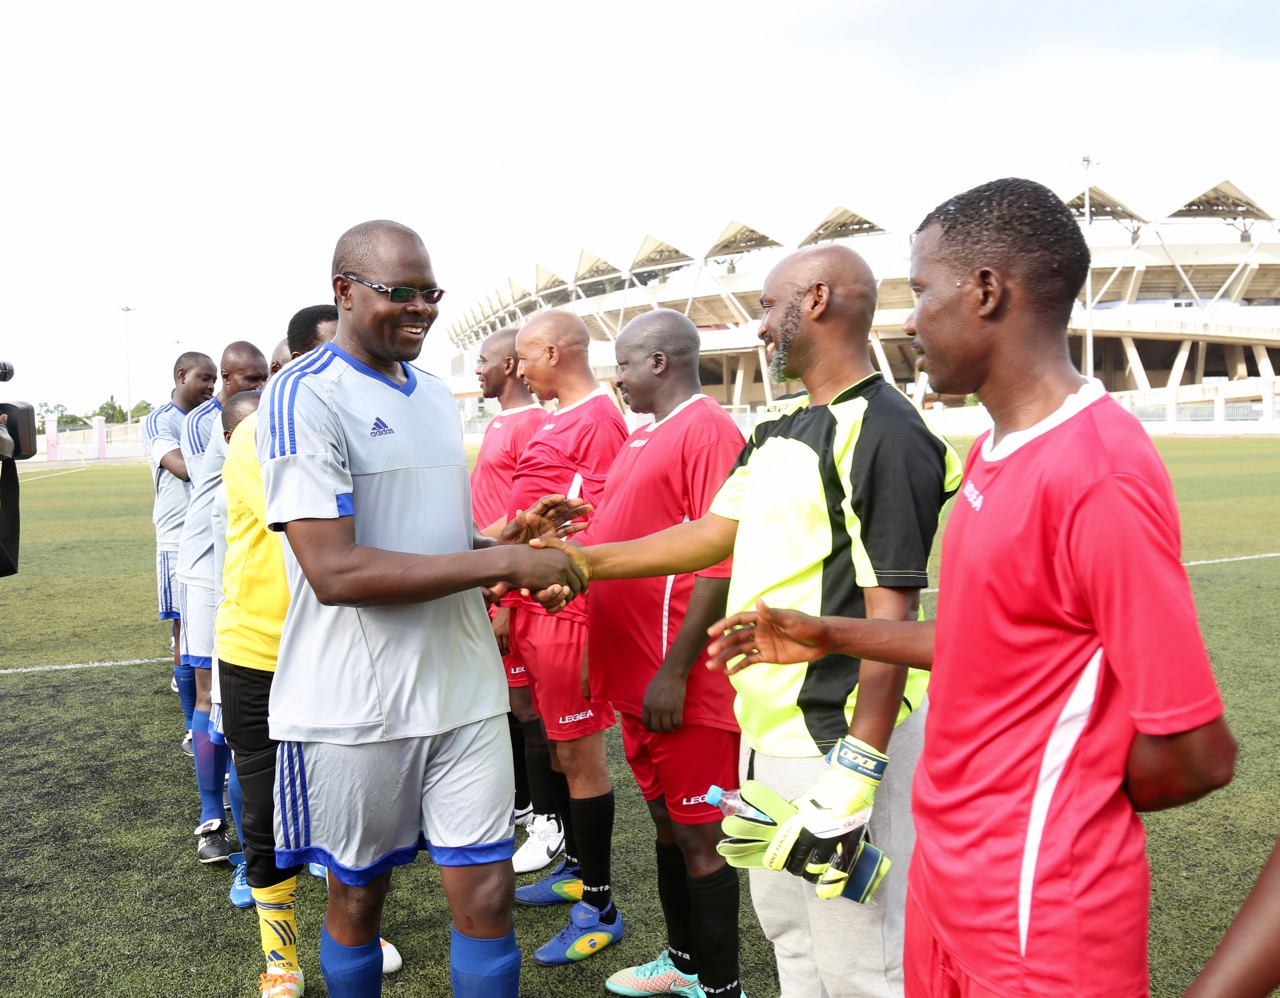 EALA's Hon Julius Wandera Maganda shakes hands with the Burundi Goalkeeper, Hon Ibrahim Uwizeye moments before the game kicked off.  EALA won 7-1